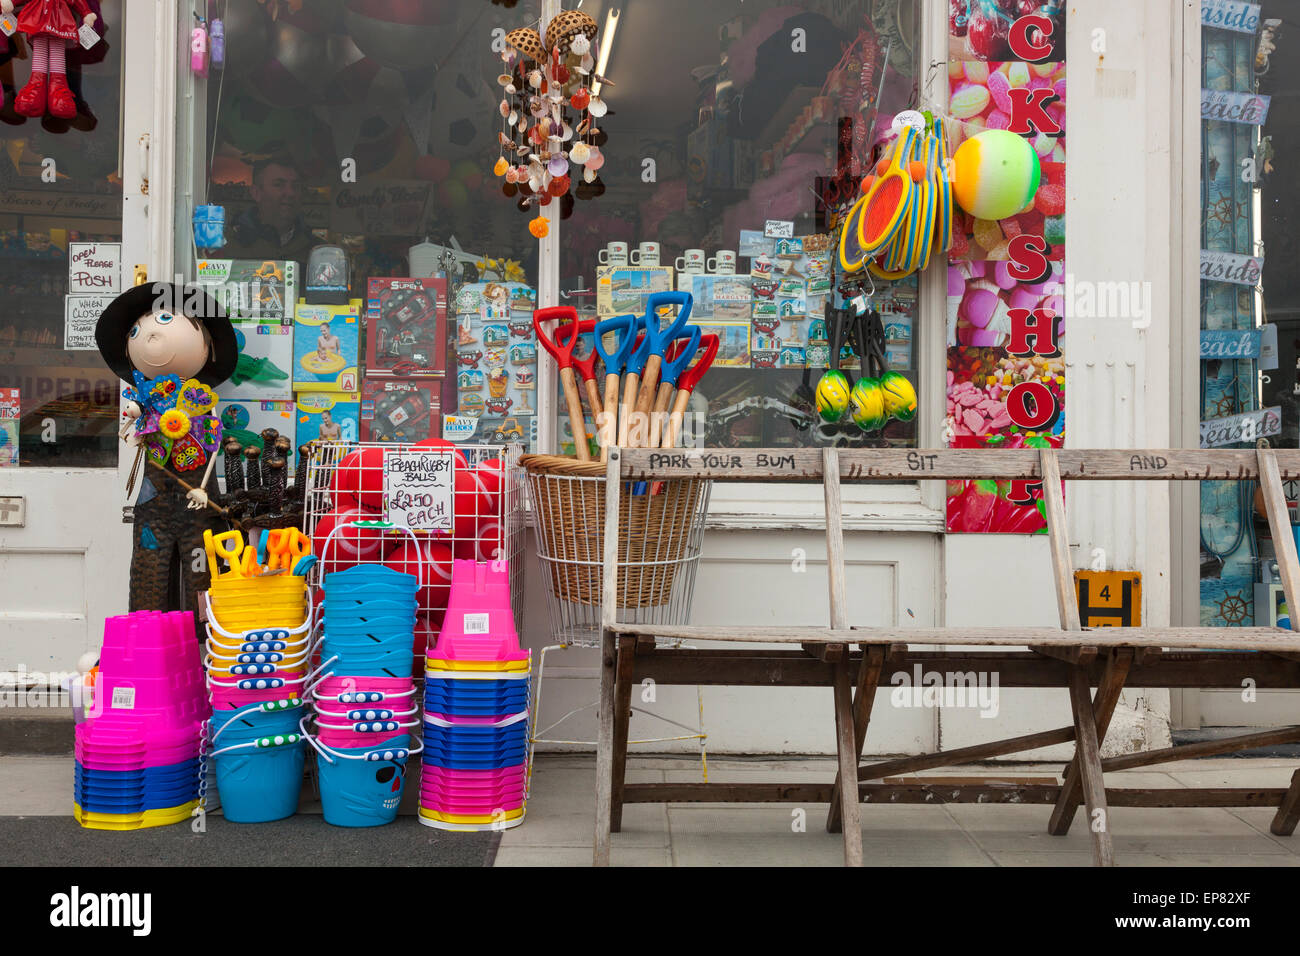 Mare shop in Margate, Kent, Inghilterra Foto Stock